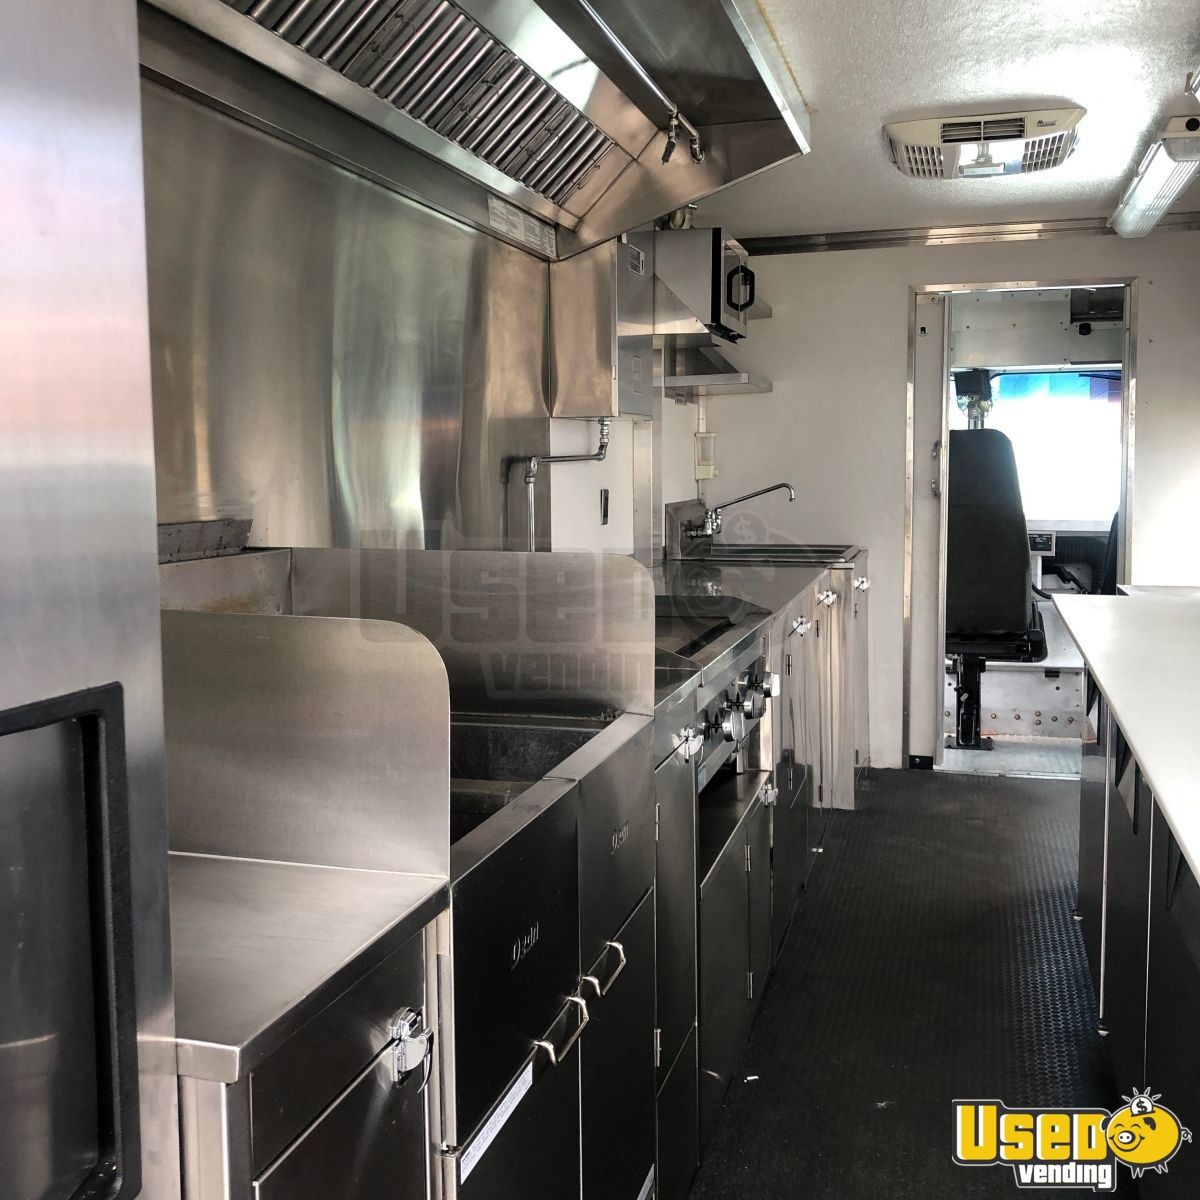 2009 Workhorse Diesel All-purpose Food Truck Generator Utah Diesel Engine for Sale - 4